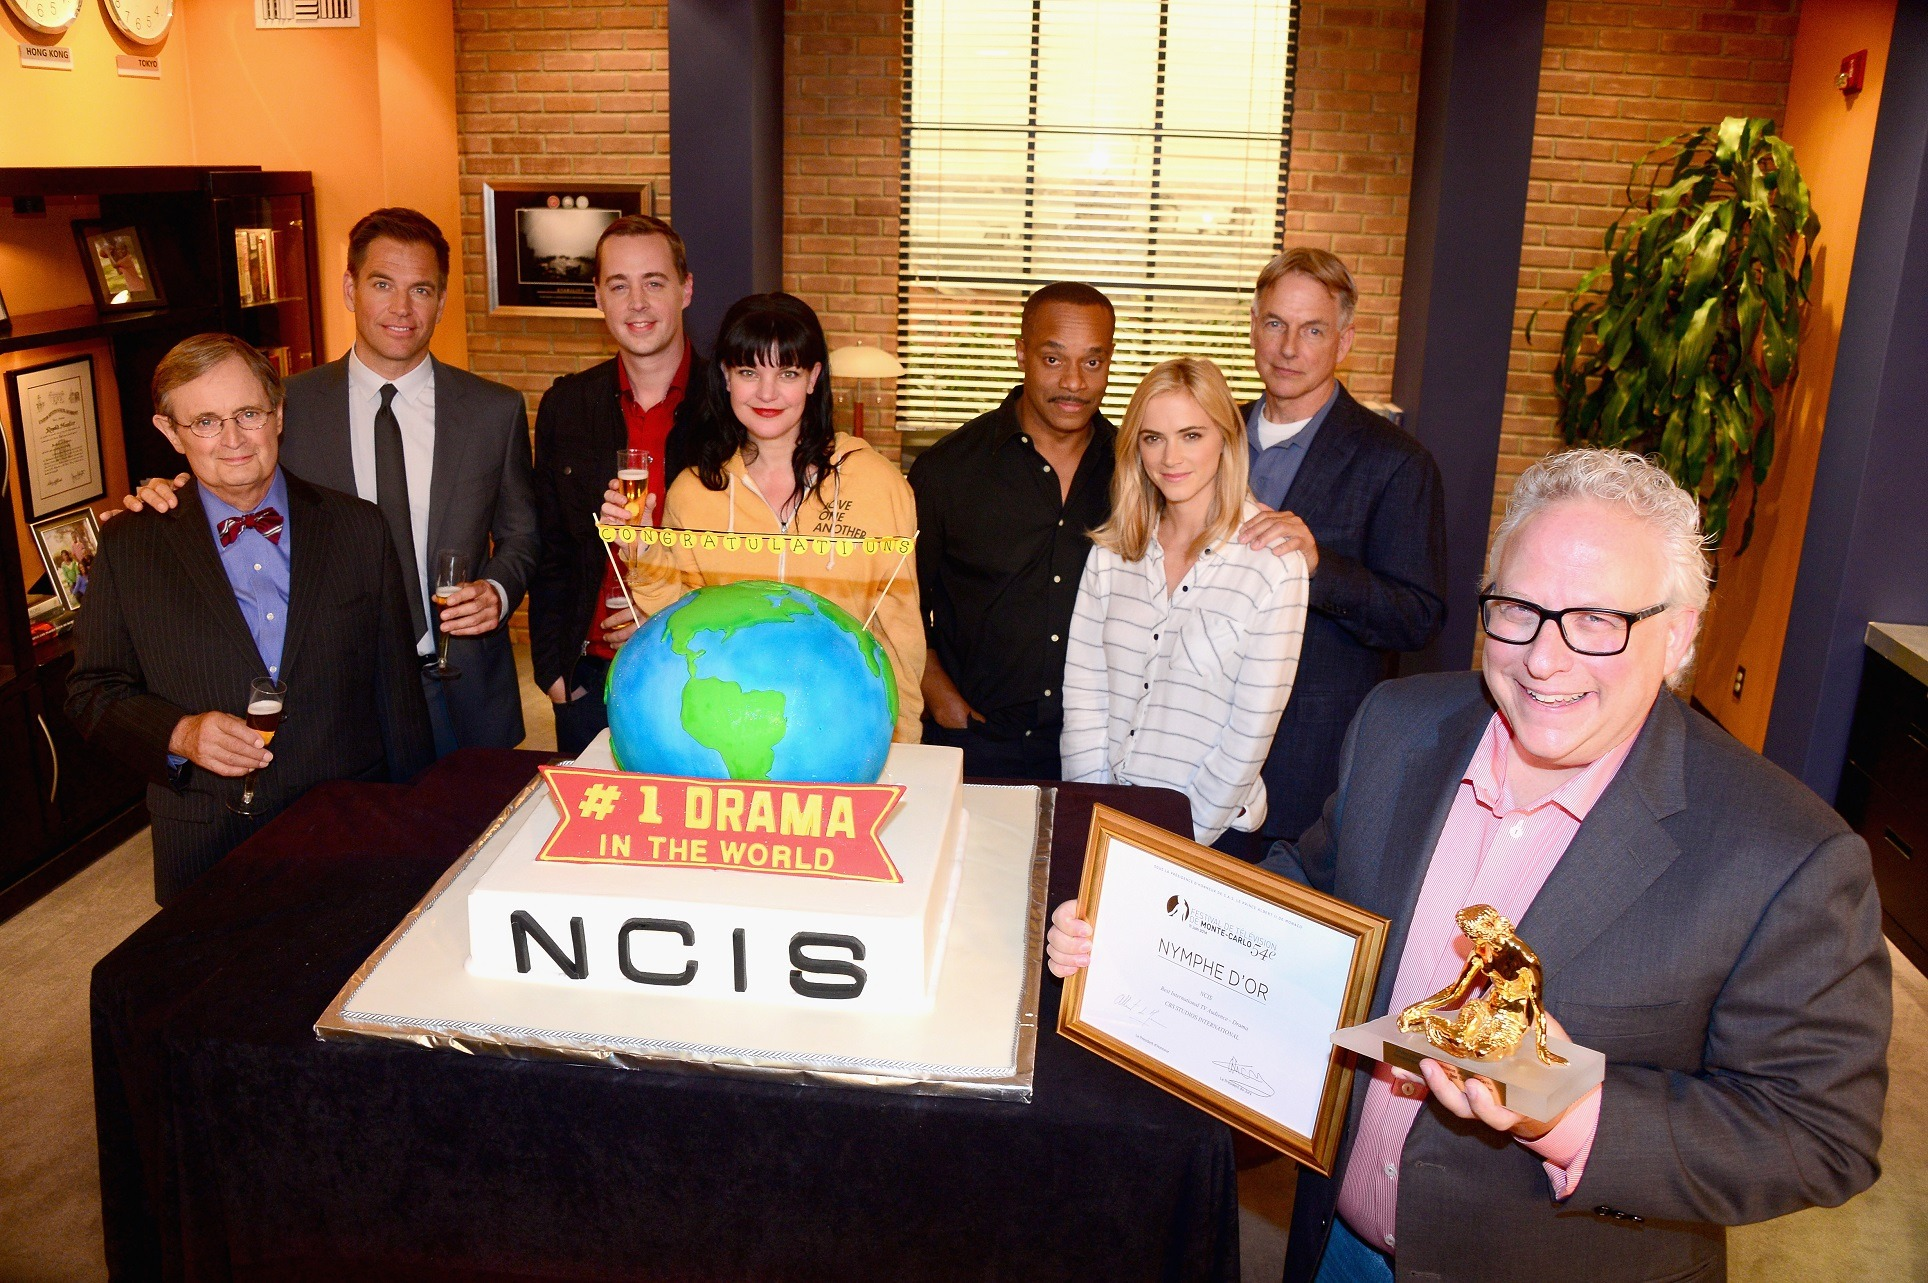 Rocky Carrool (fourth from right) and the cast of NCIS.